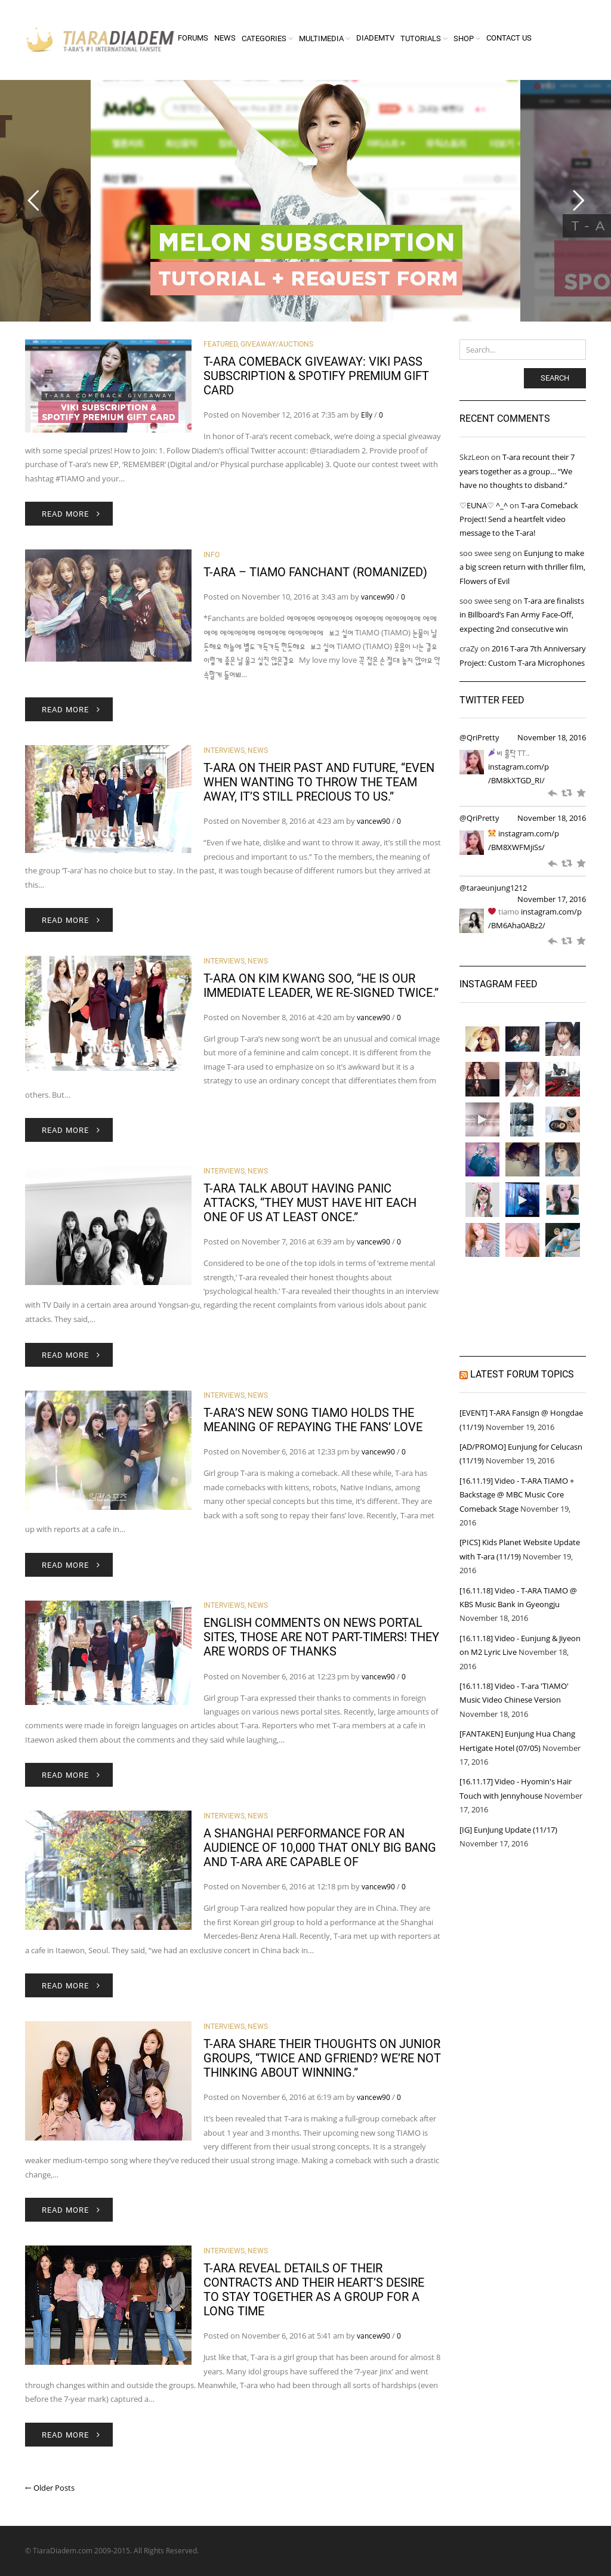 Diadem Forums Competitors, Revenue and Employees - Owler